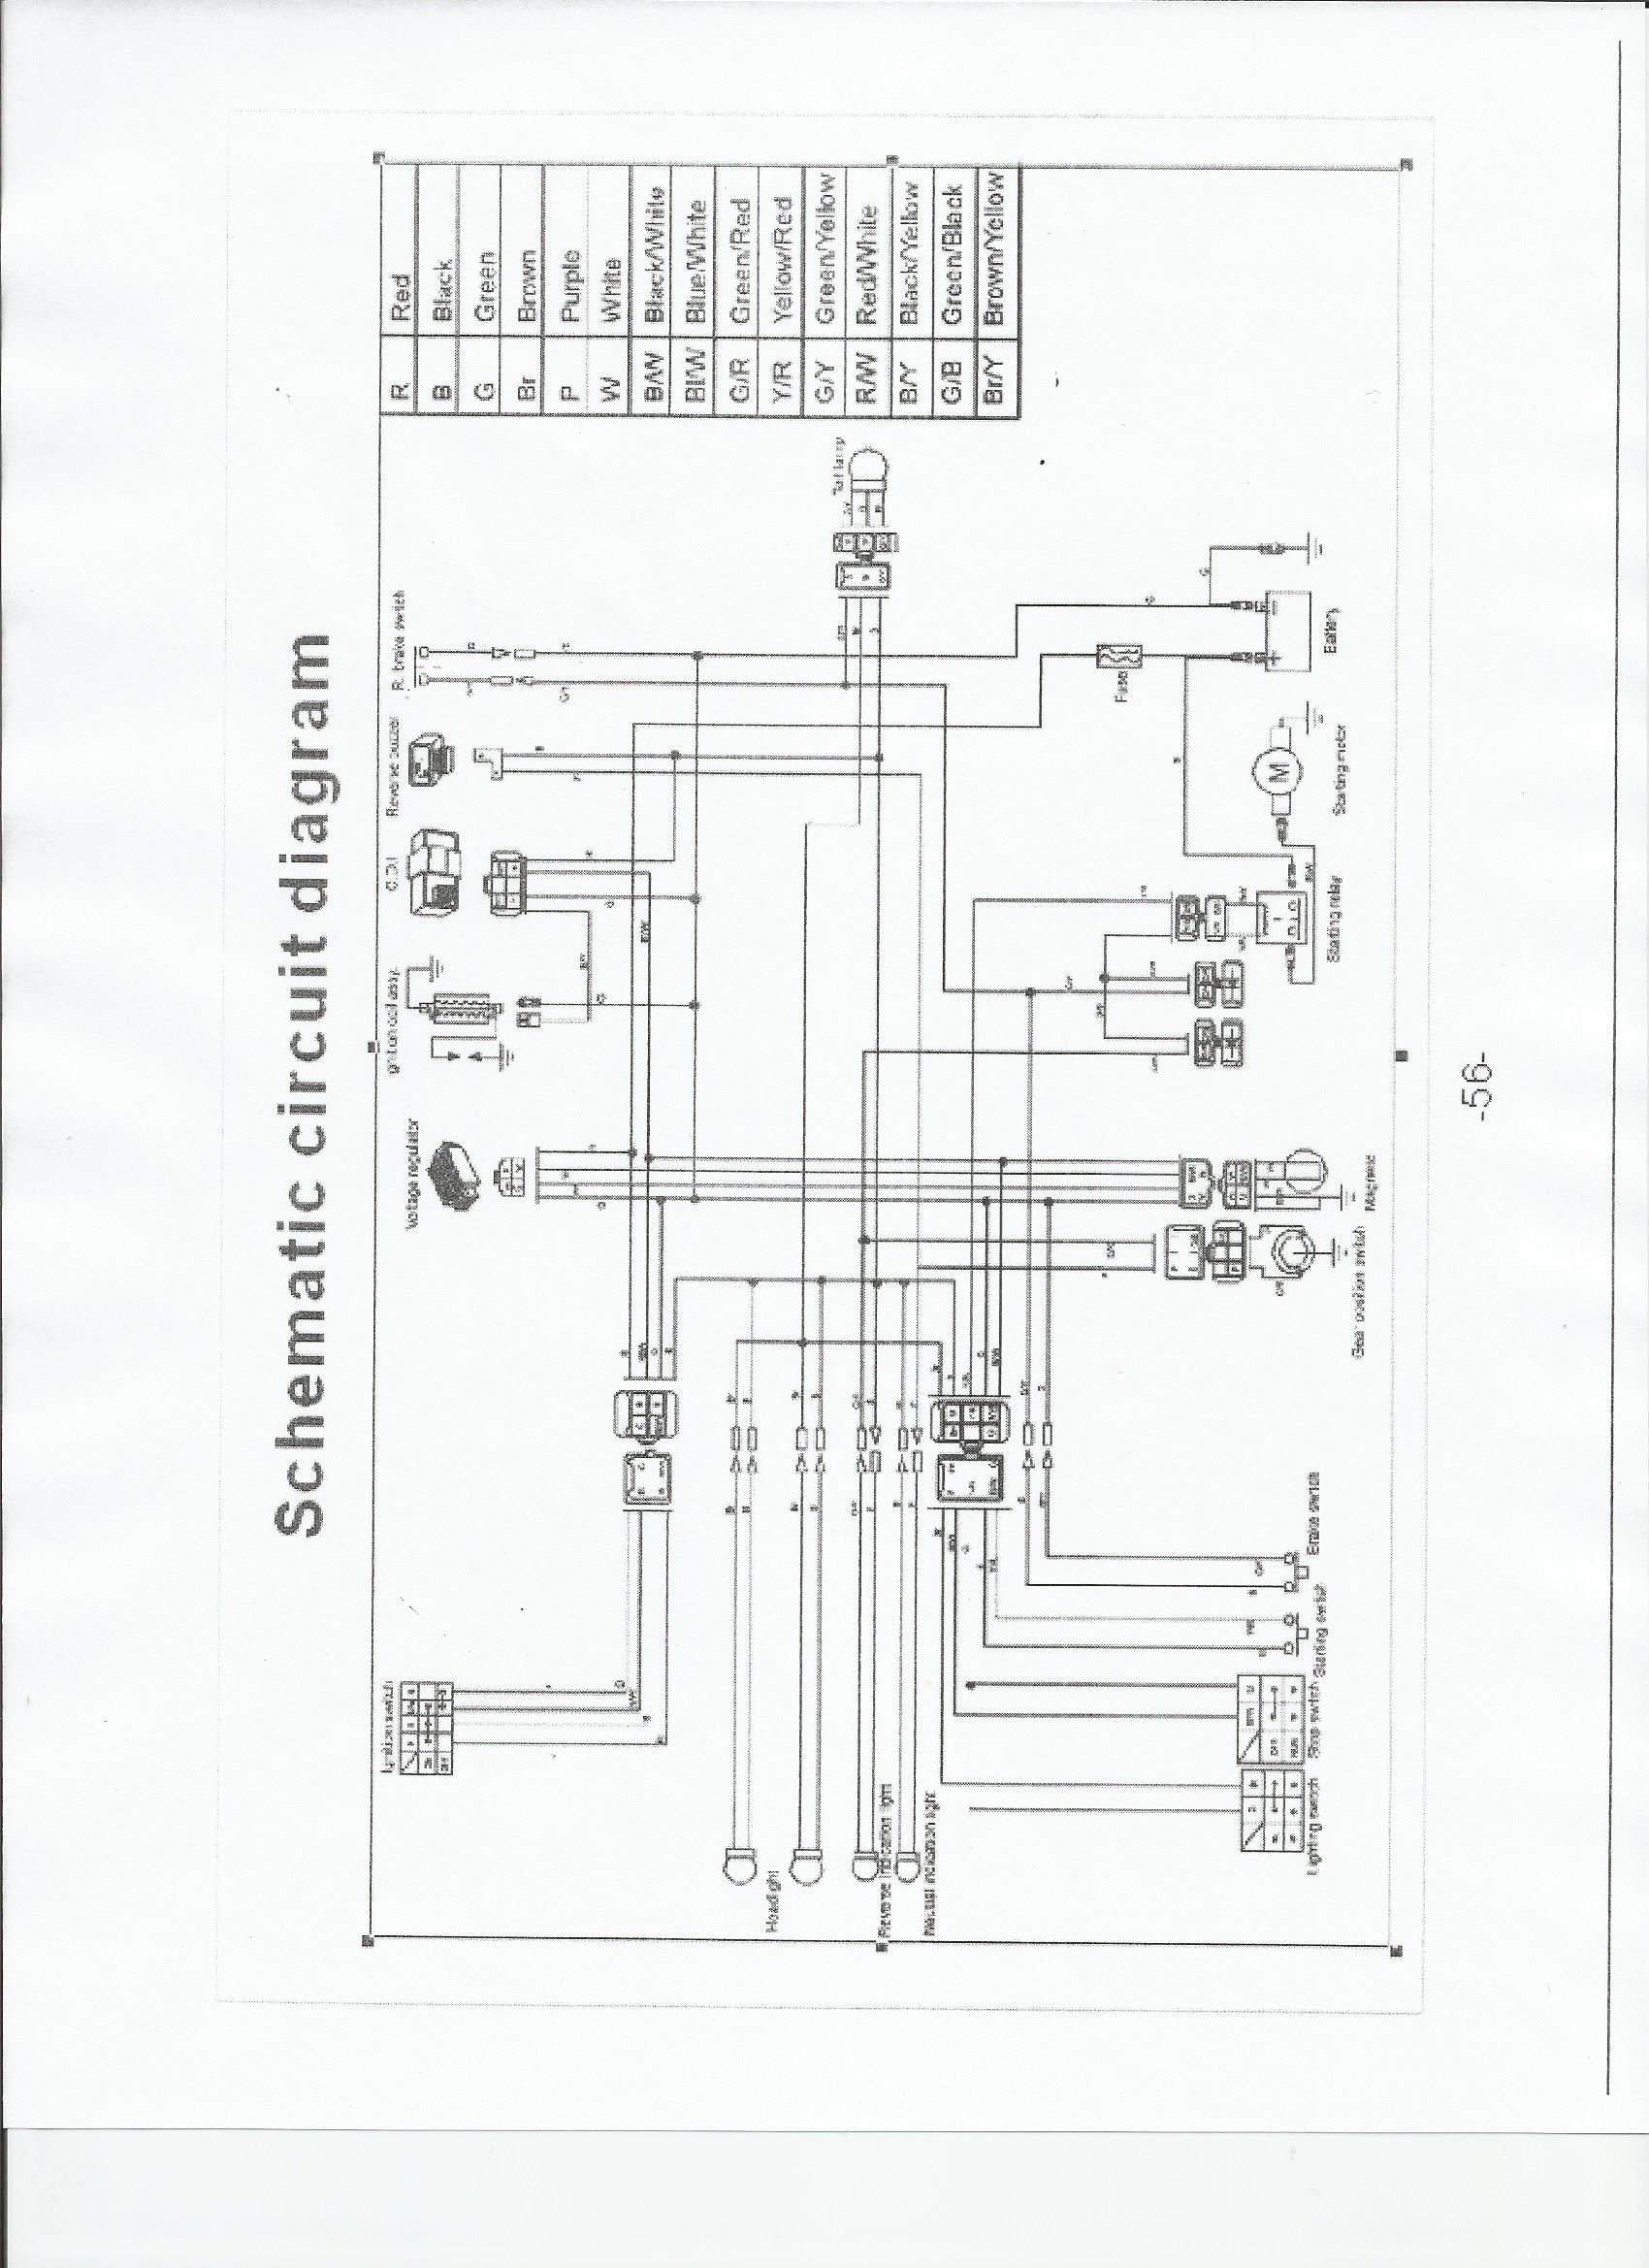 tao tao wiring schematic s support familygokarts com hc en us article red bull mini fridge wiring diagram at suagrazia.org